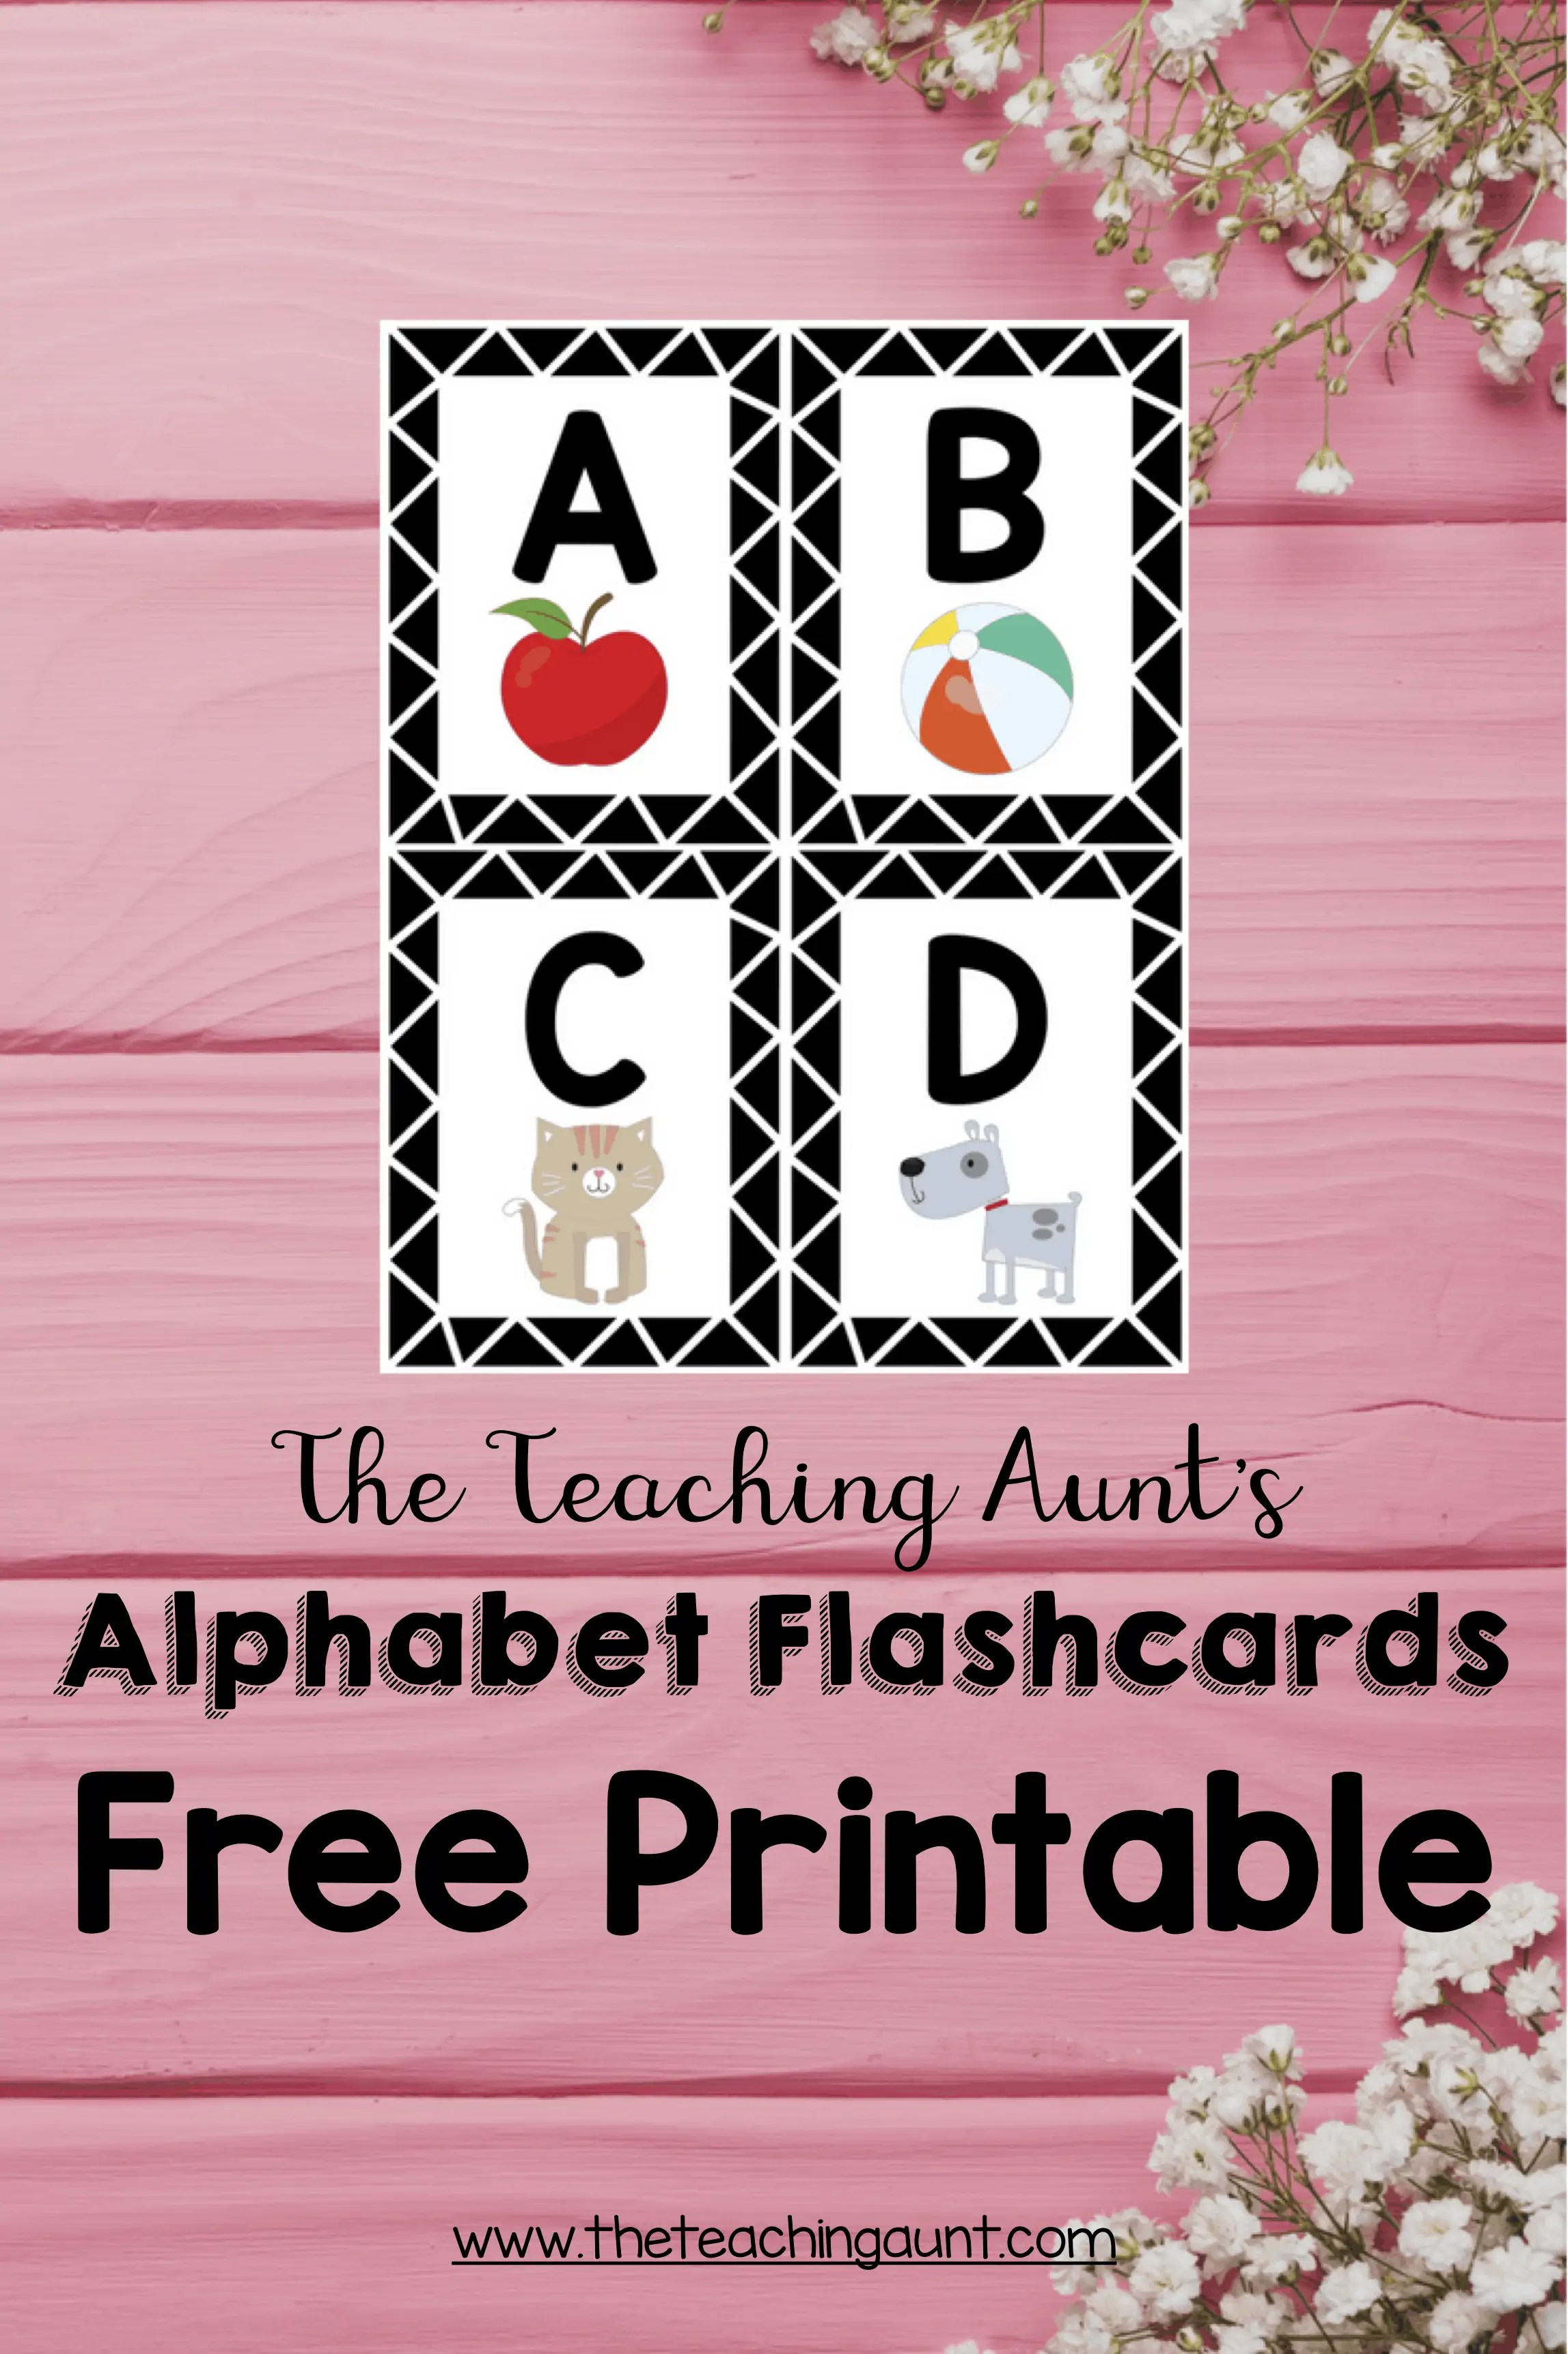 image relating to Printable Font known as Alphabet Flashcards Cost-free Printable - The Coaching Aunt